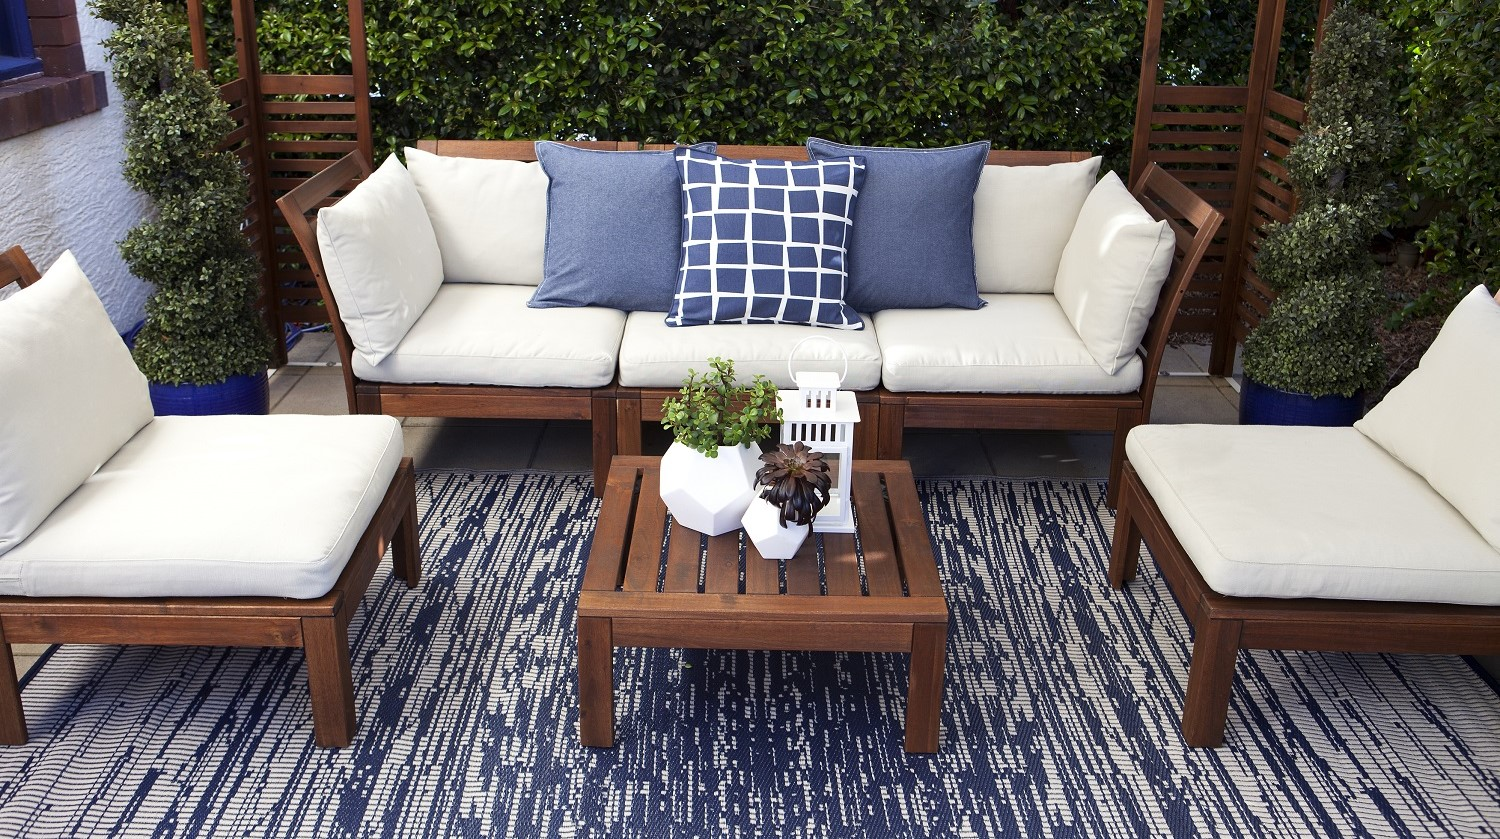 Outdoor rugs make your outdoors aesthetically beautiful